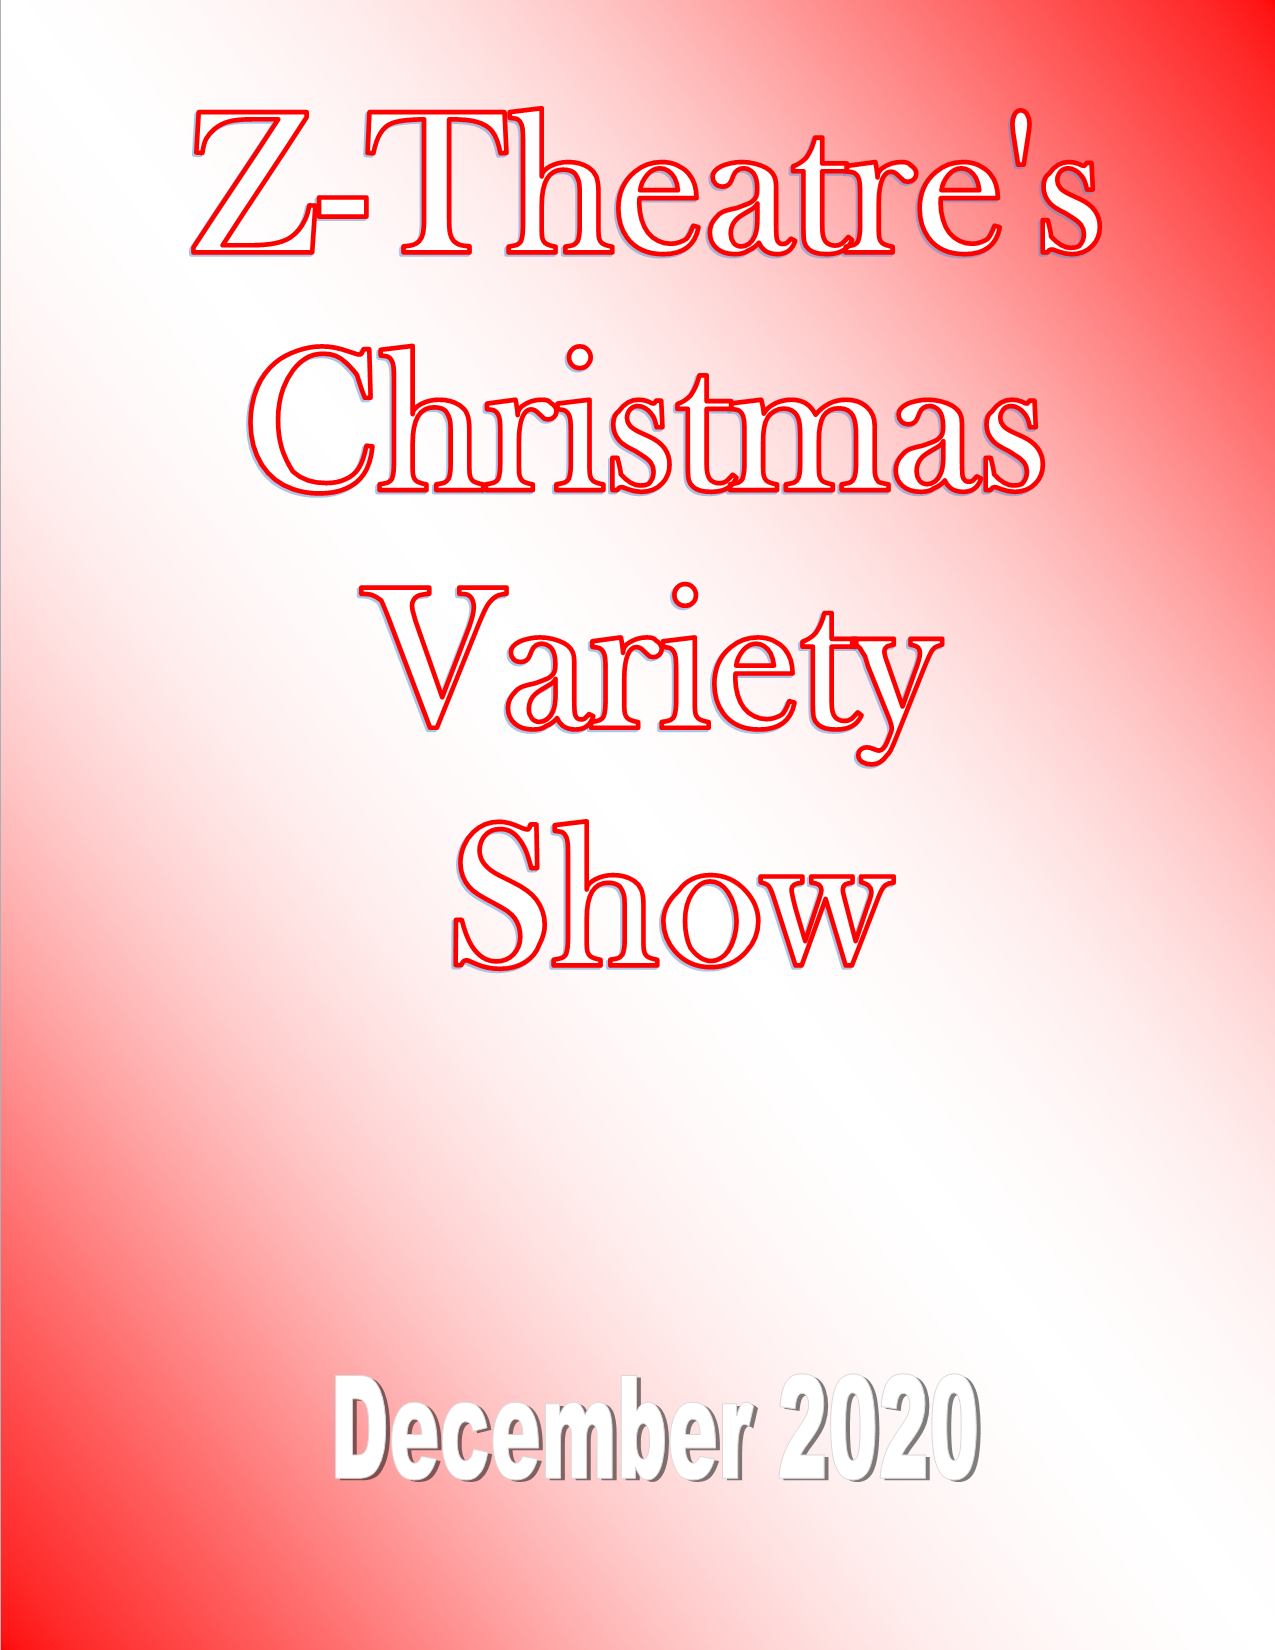 z-theatre zumbrota christmas musical variety show